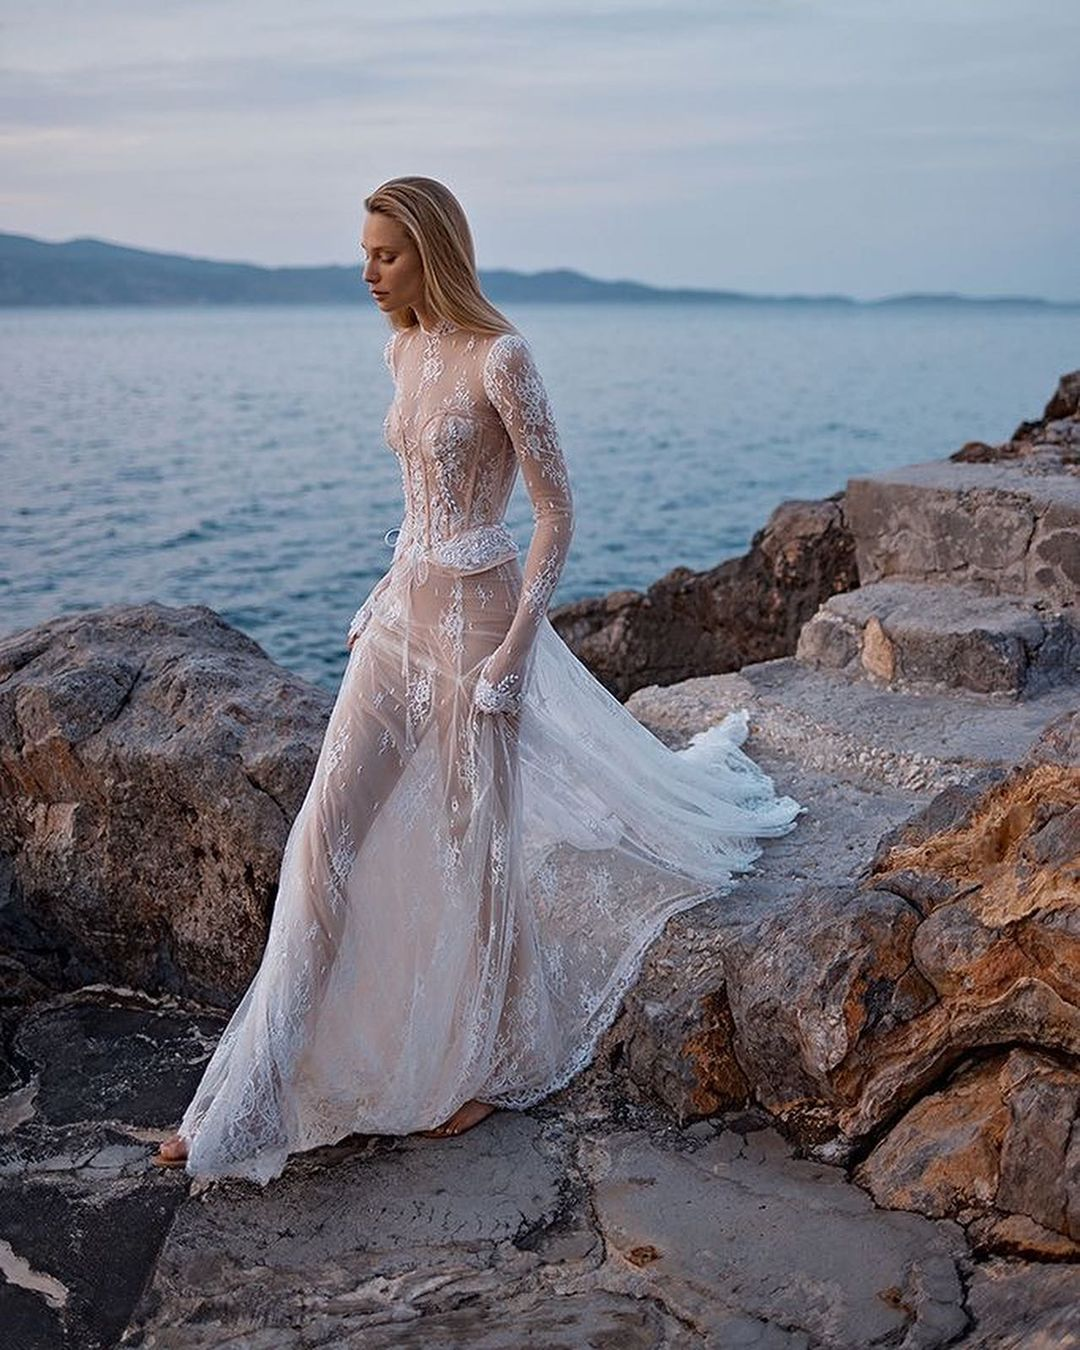 The 18 Best Wedding Dresses According to Our Editors